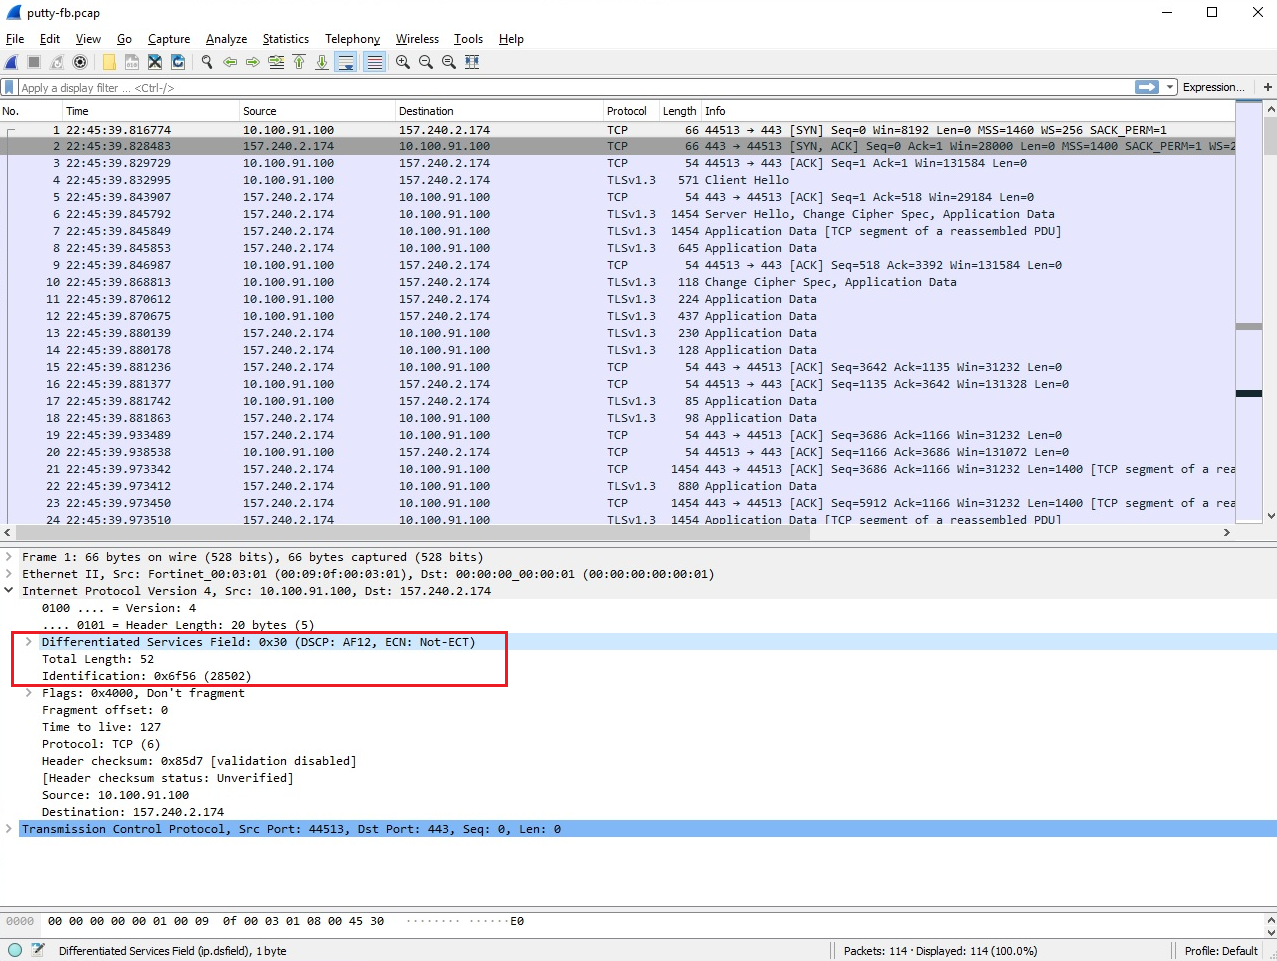 DSCP tagged VoIP traffic analysis